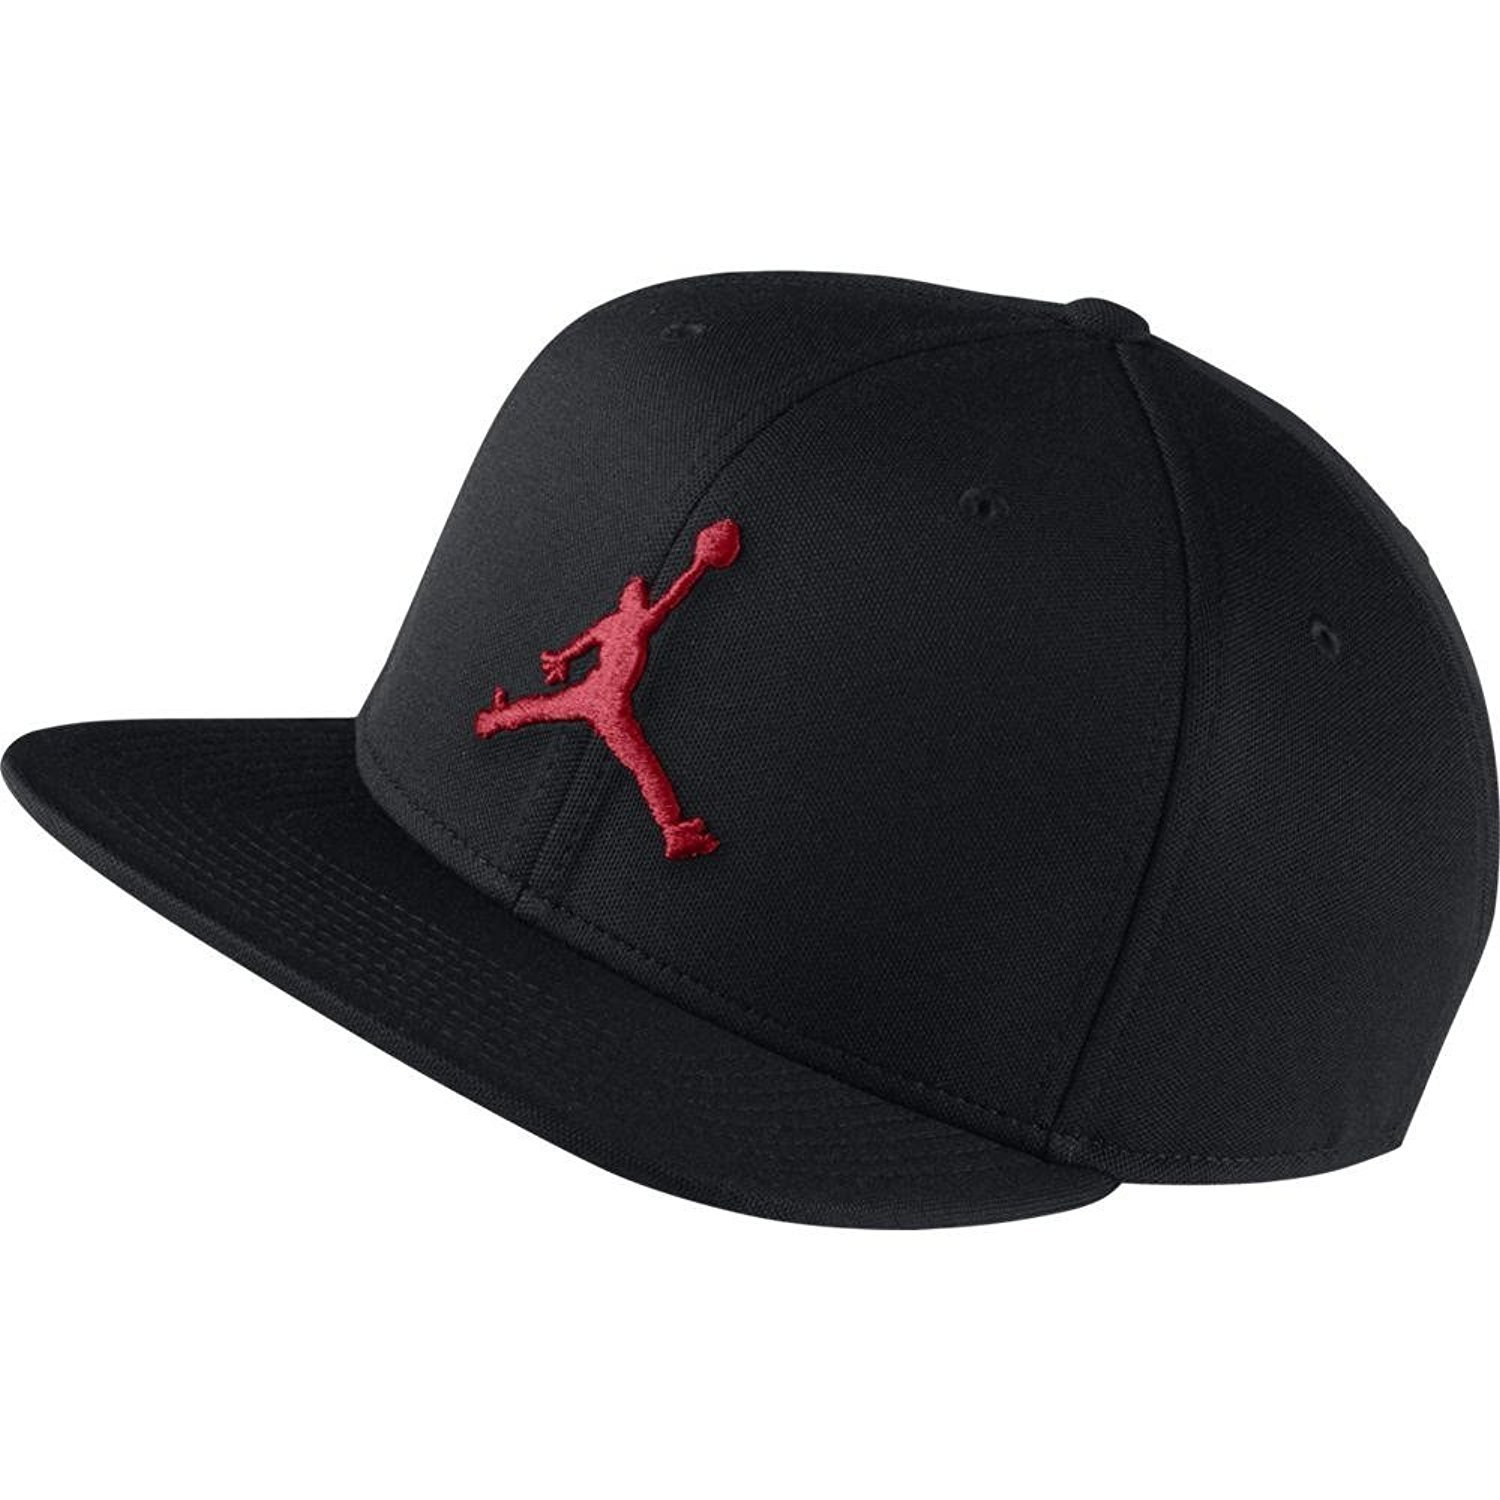 23fdd242324 ... sweden nike mens jordan jumpman snapback hat black university red  861452 011 bf93d 5c0b5